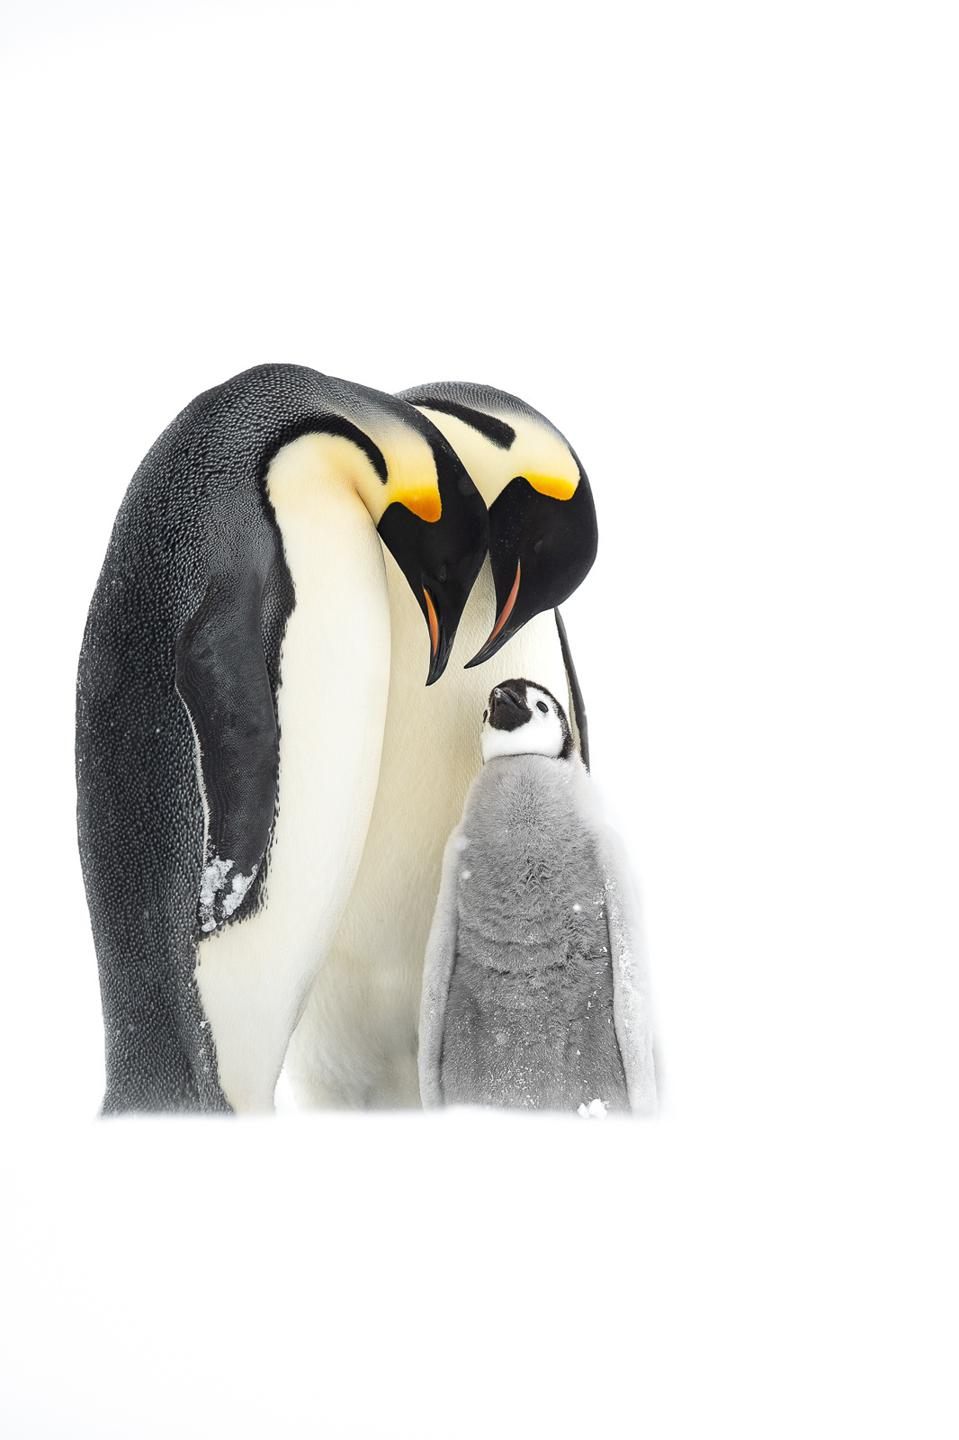 Emperor penguins with their baby.